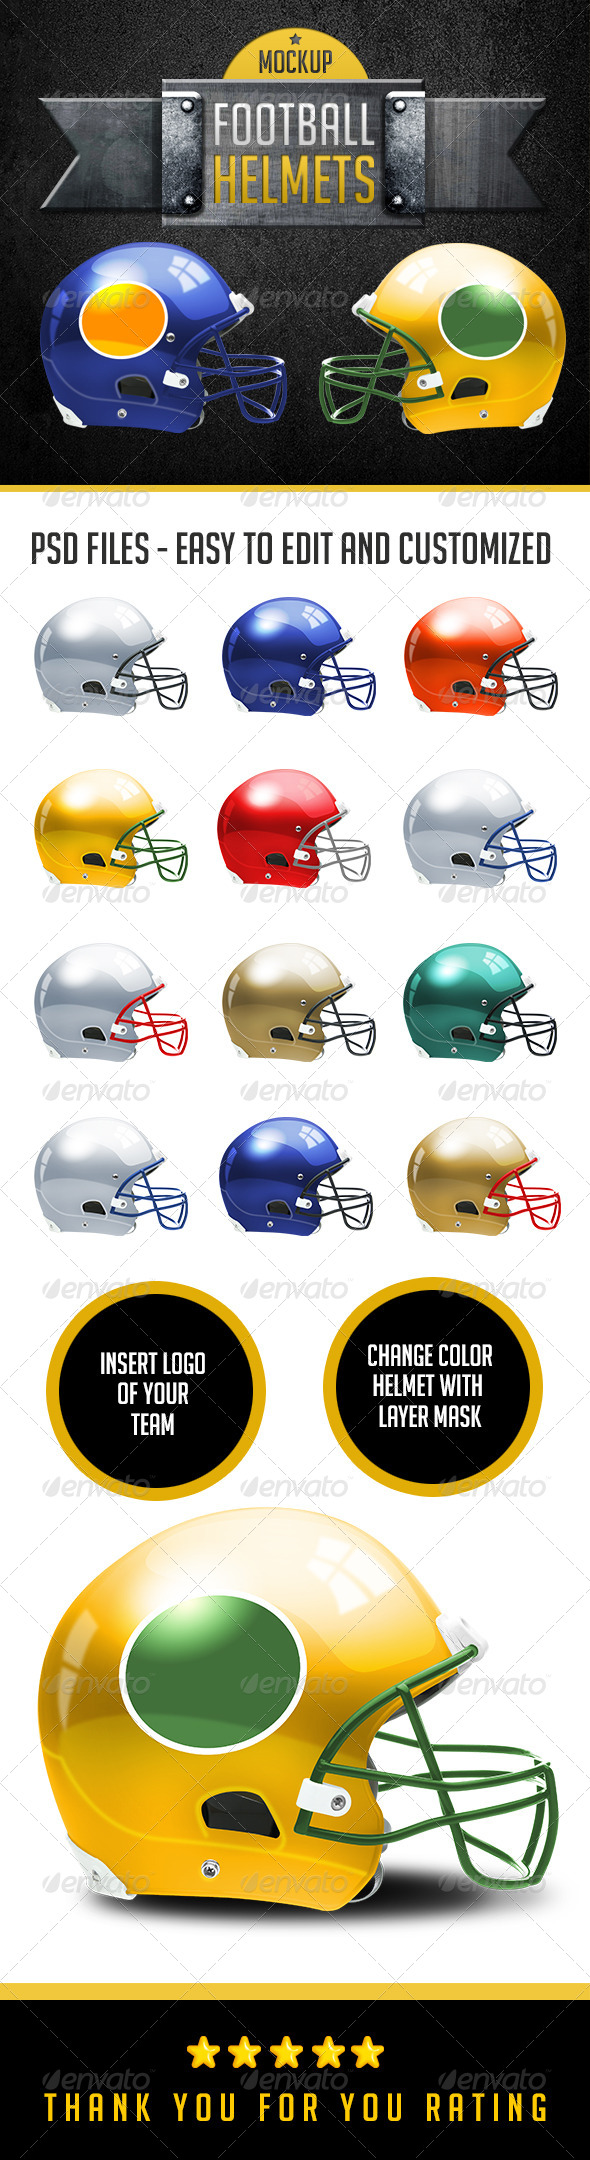 Football Helmets Layered and Editable Colors - Miscellaneous Apparel